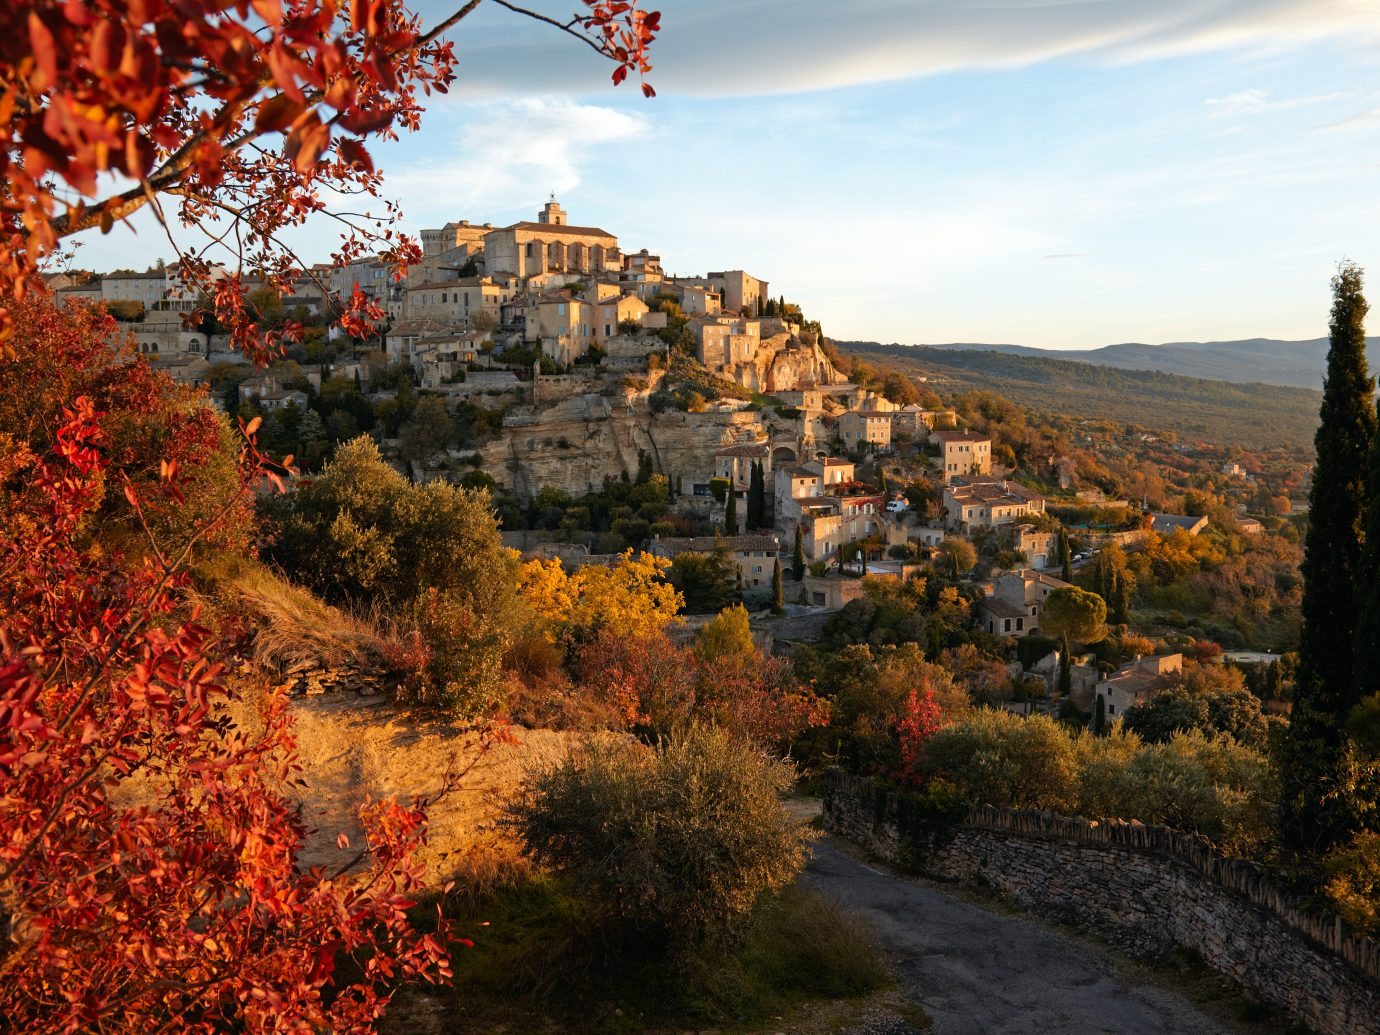 Gordes, Vaucluse, Provence, France on a morning in autumn.